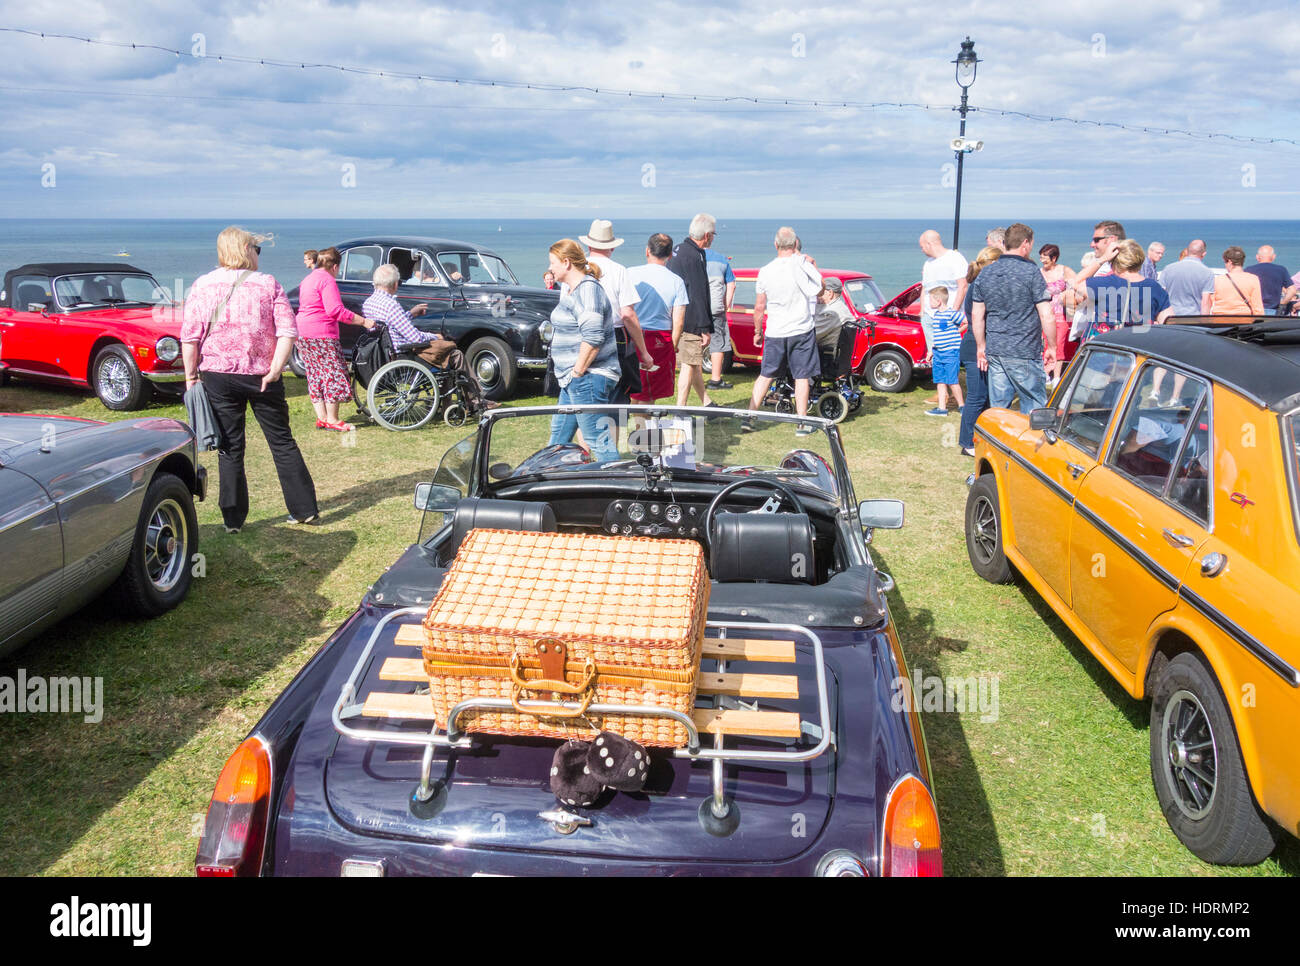 classic car display during Whitby Regatta weekend. Whitby, North Yorkshire, England. UK - Stock Image